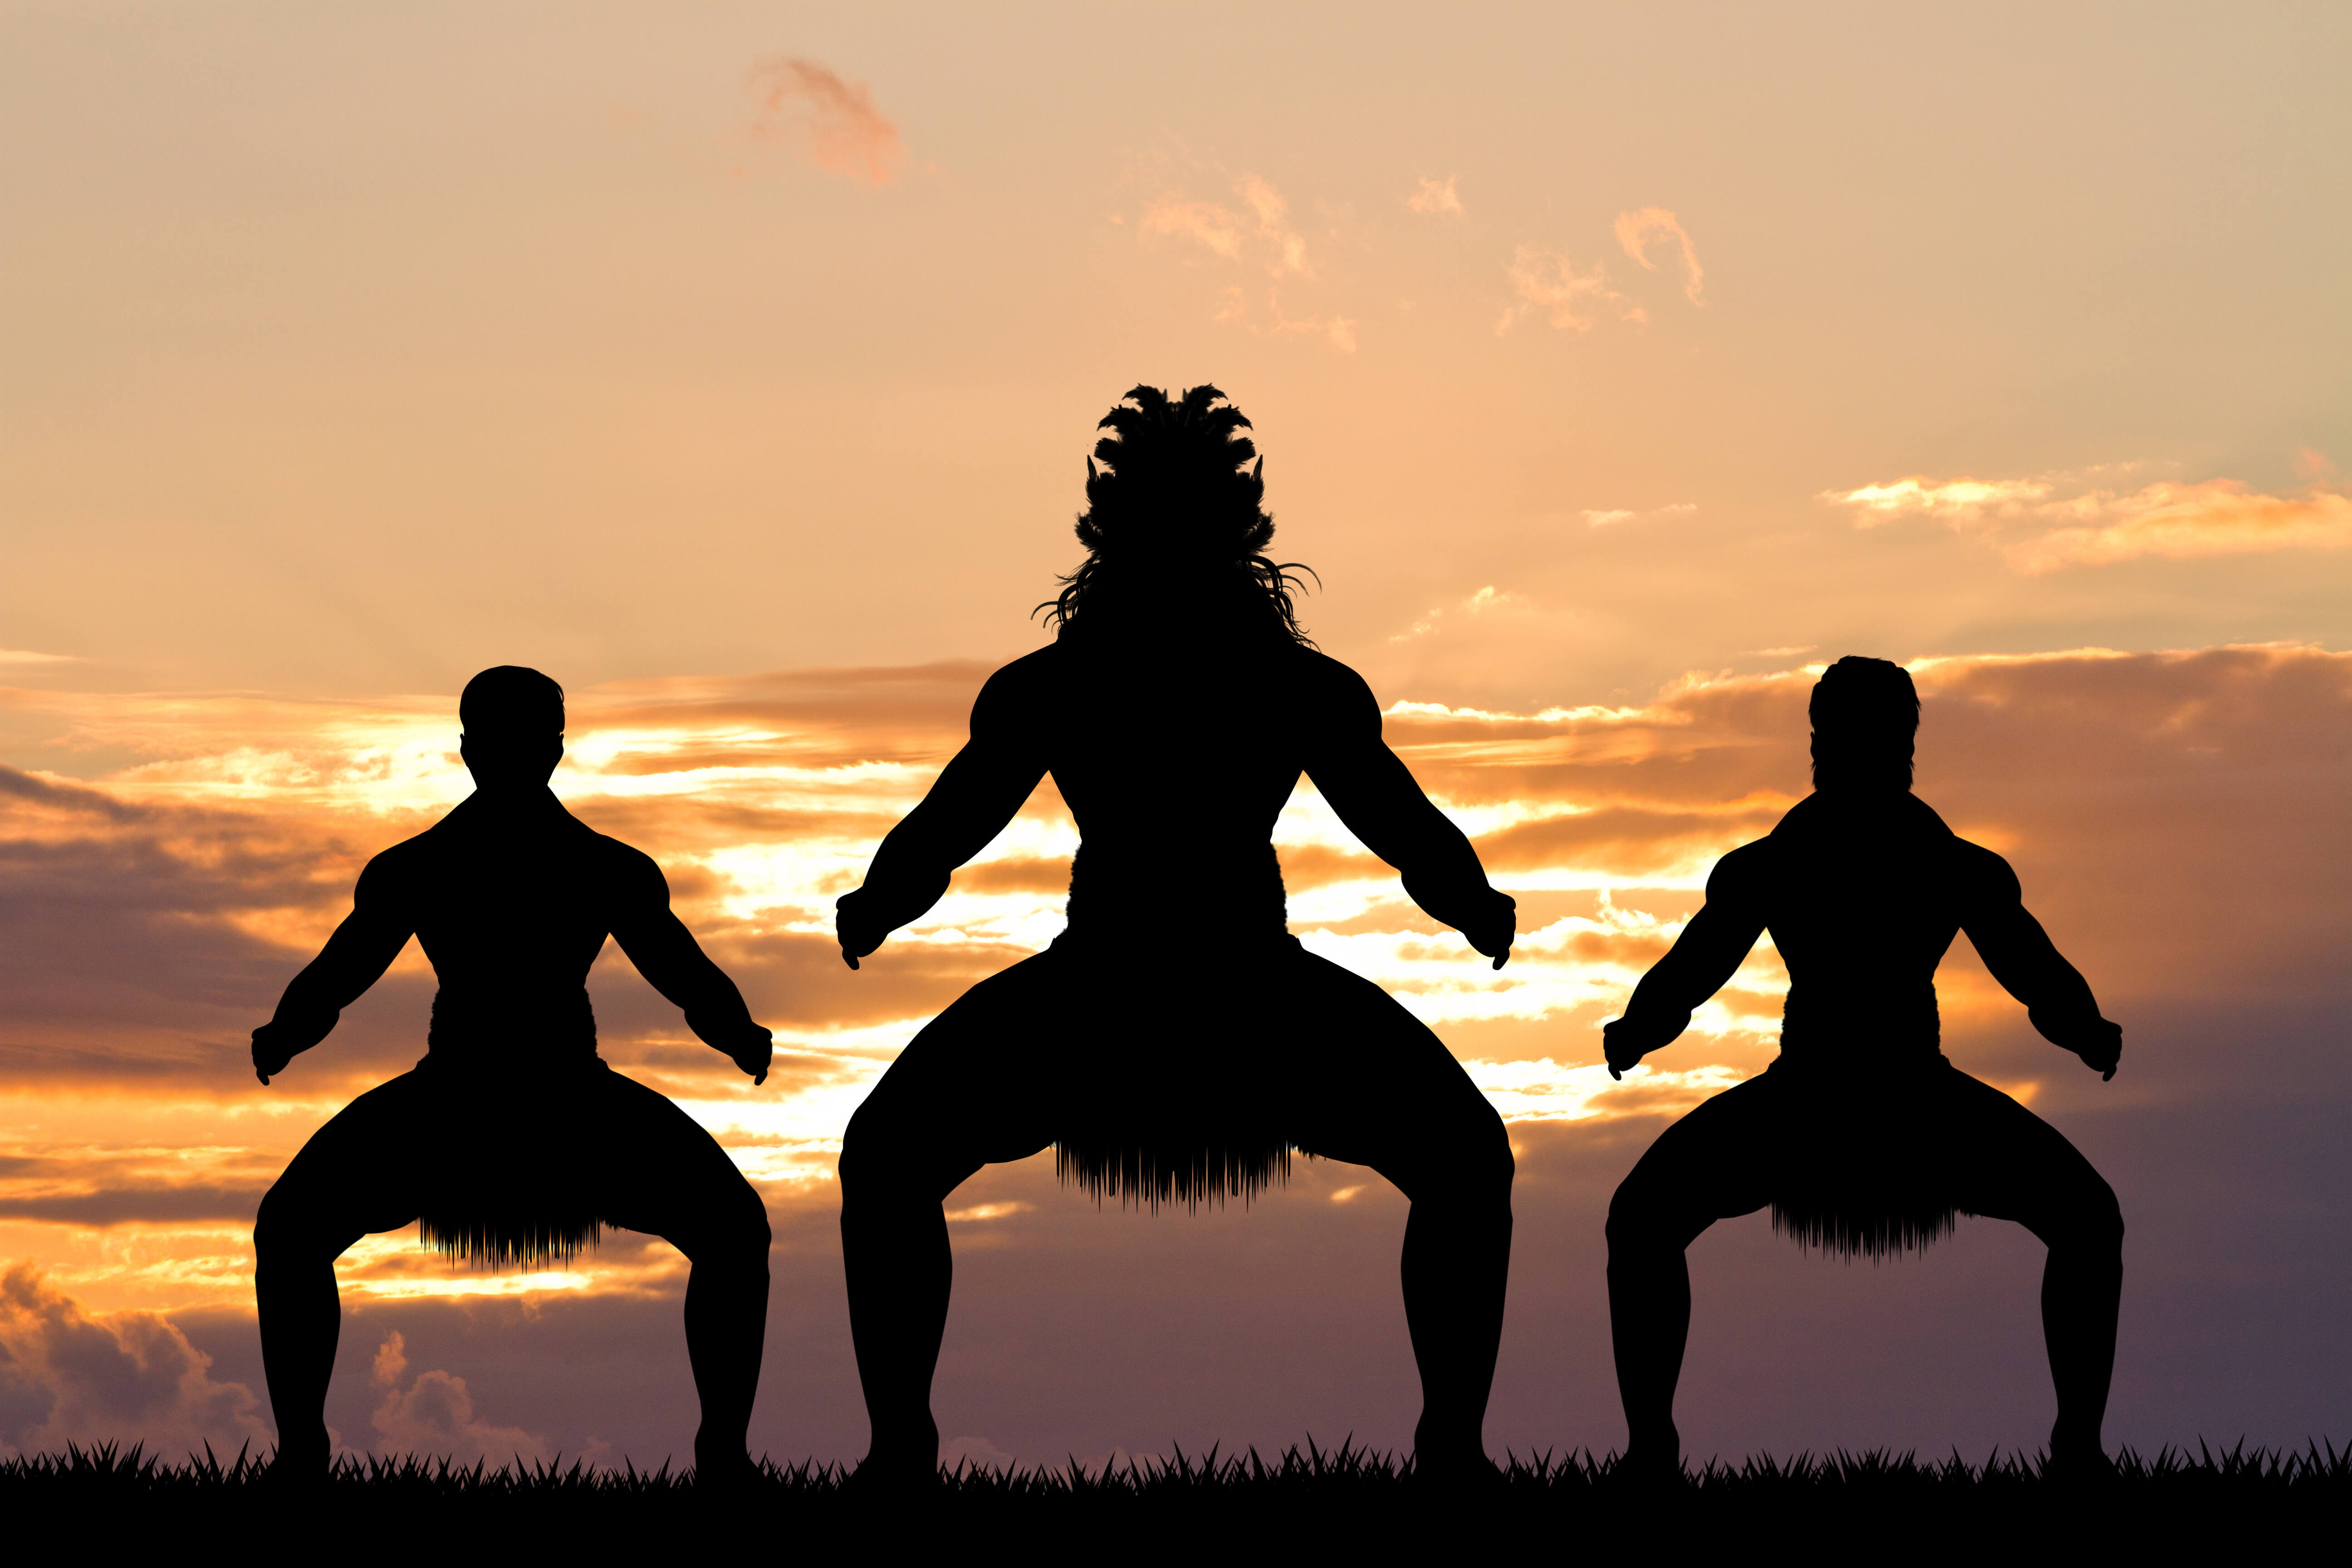 Maori Dance at Sunset in New Zealand